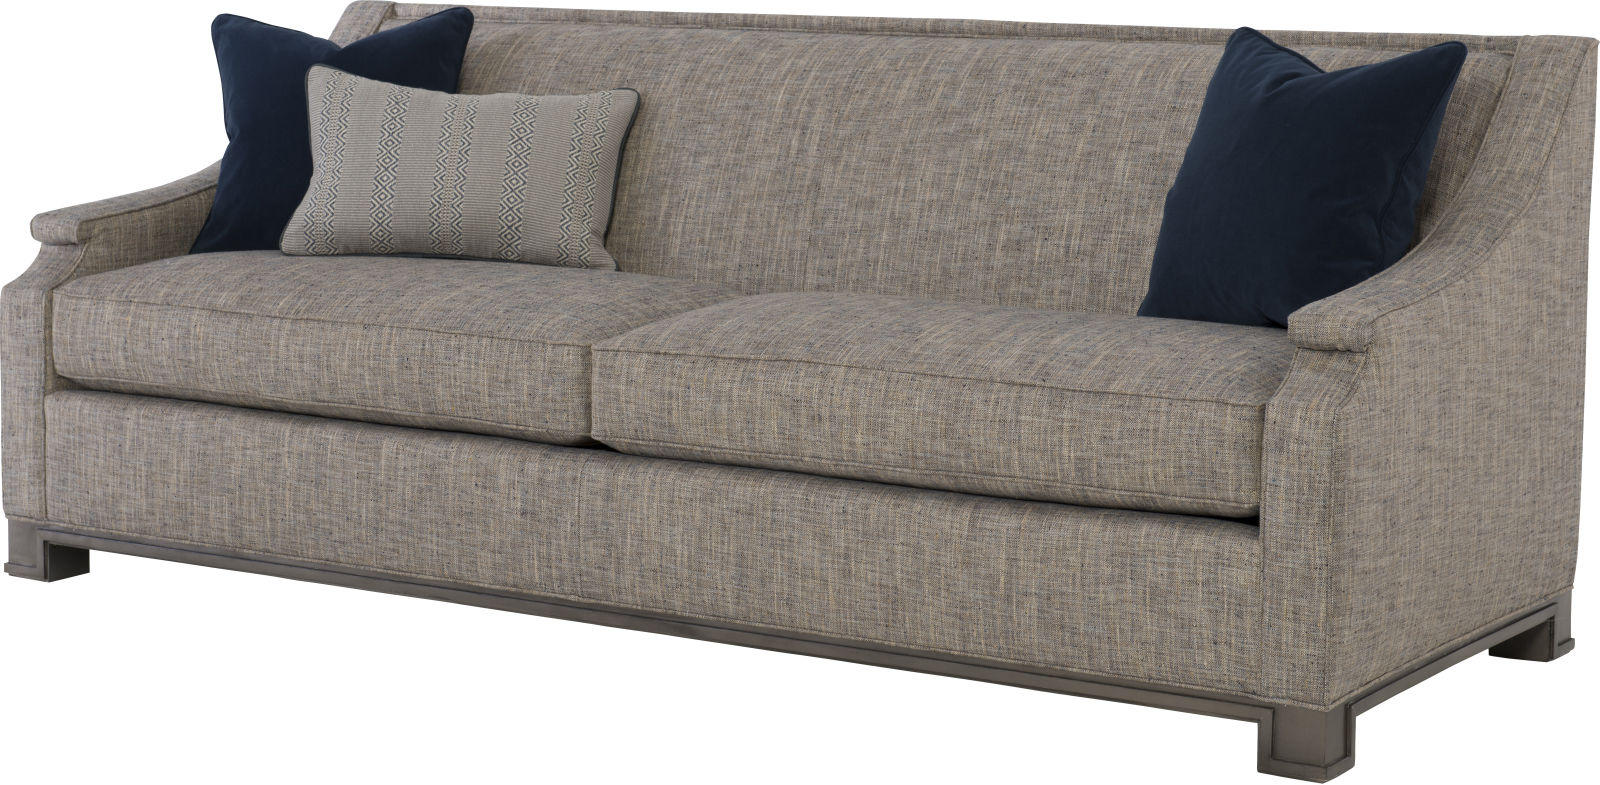 wesley hall sofas folding bed sofa couch furniture hickory nc product page p1982